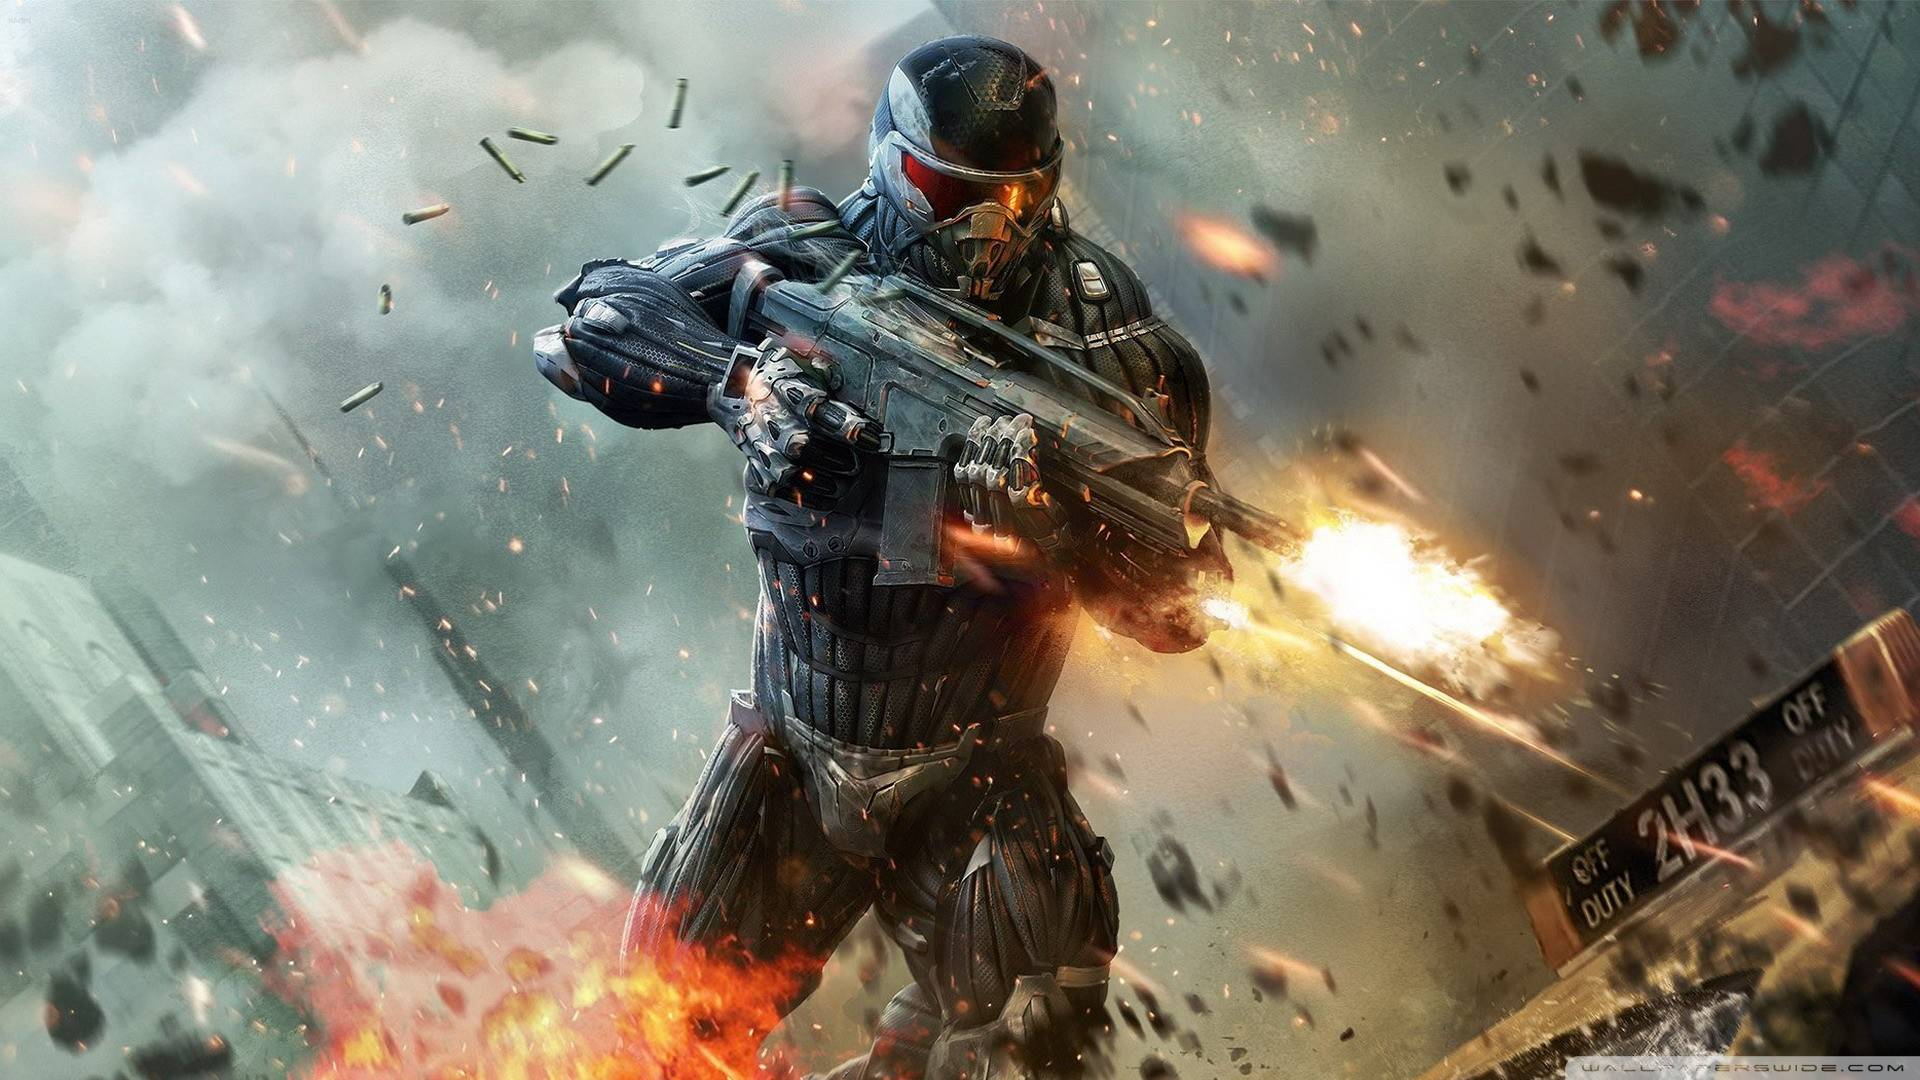 Crysis 2 Wallpapers in full 1080P HD « GamingBolt.com: Video Game .